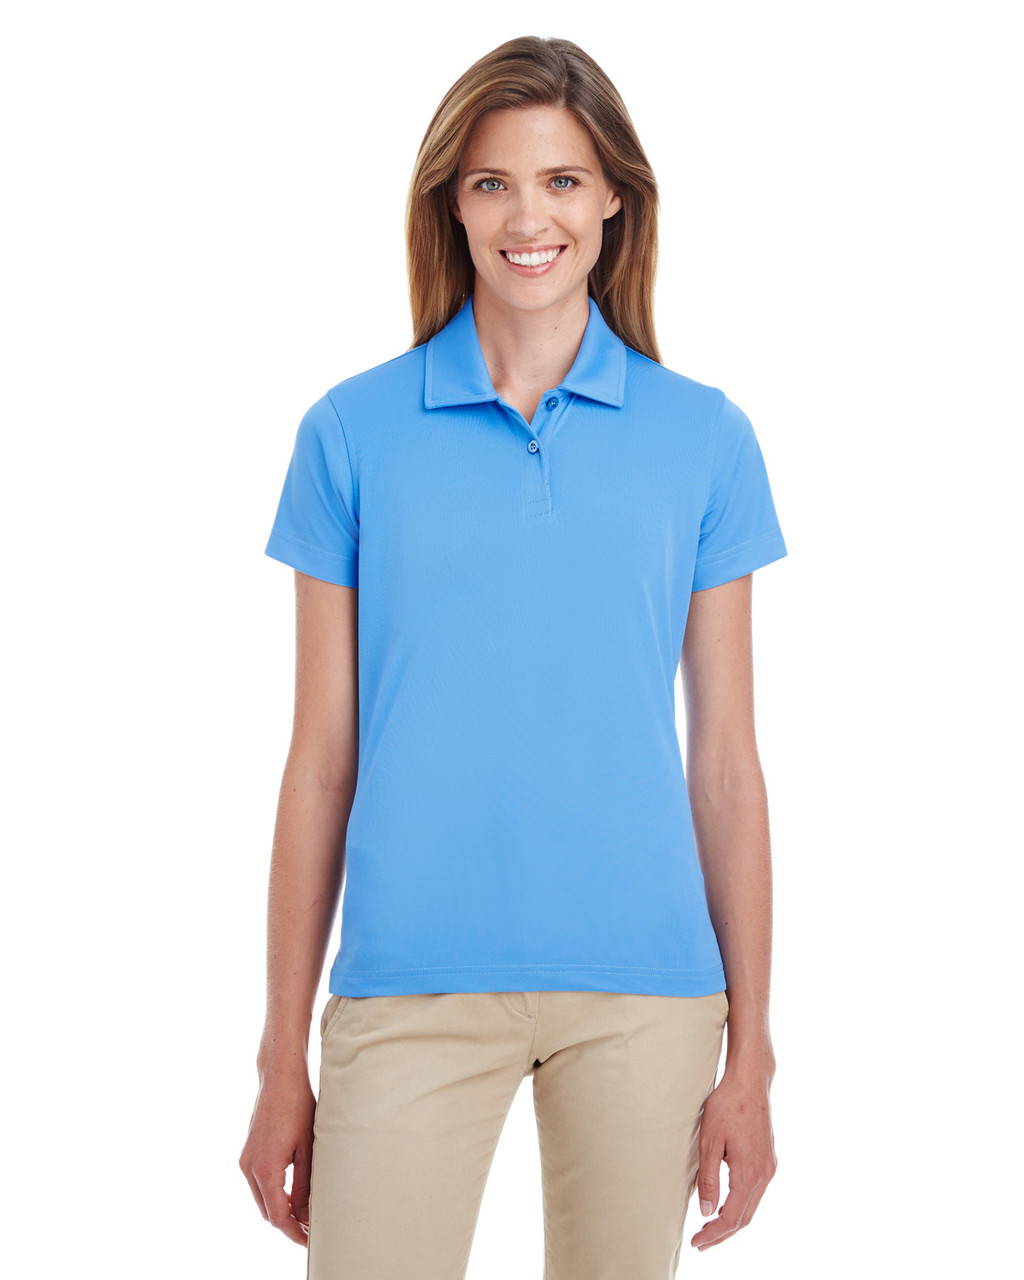 Sport Light Blue - TT21W Team 365 Ladies' Command Snag Protection Polo Shirt